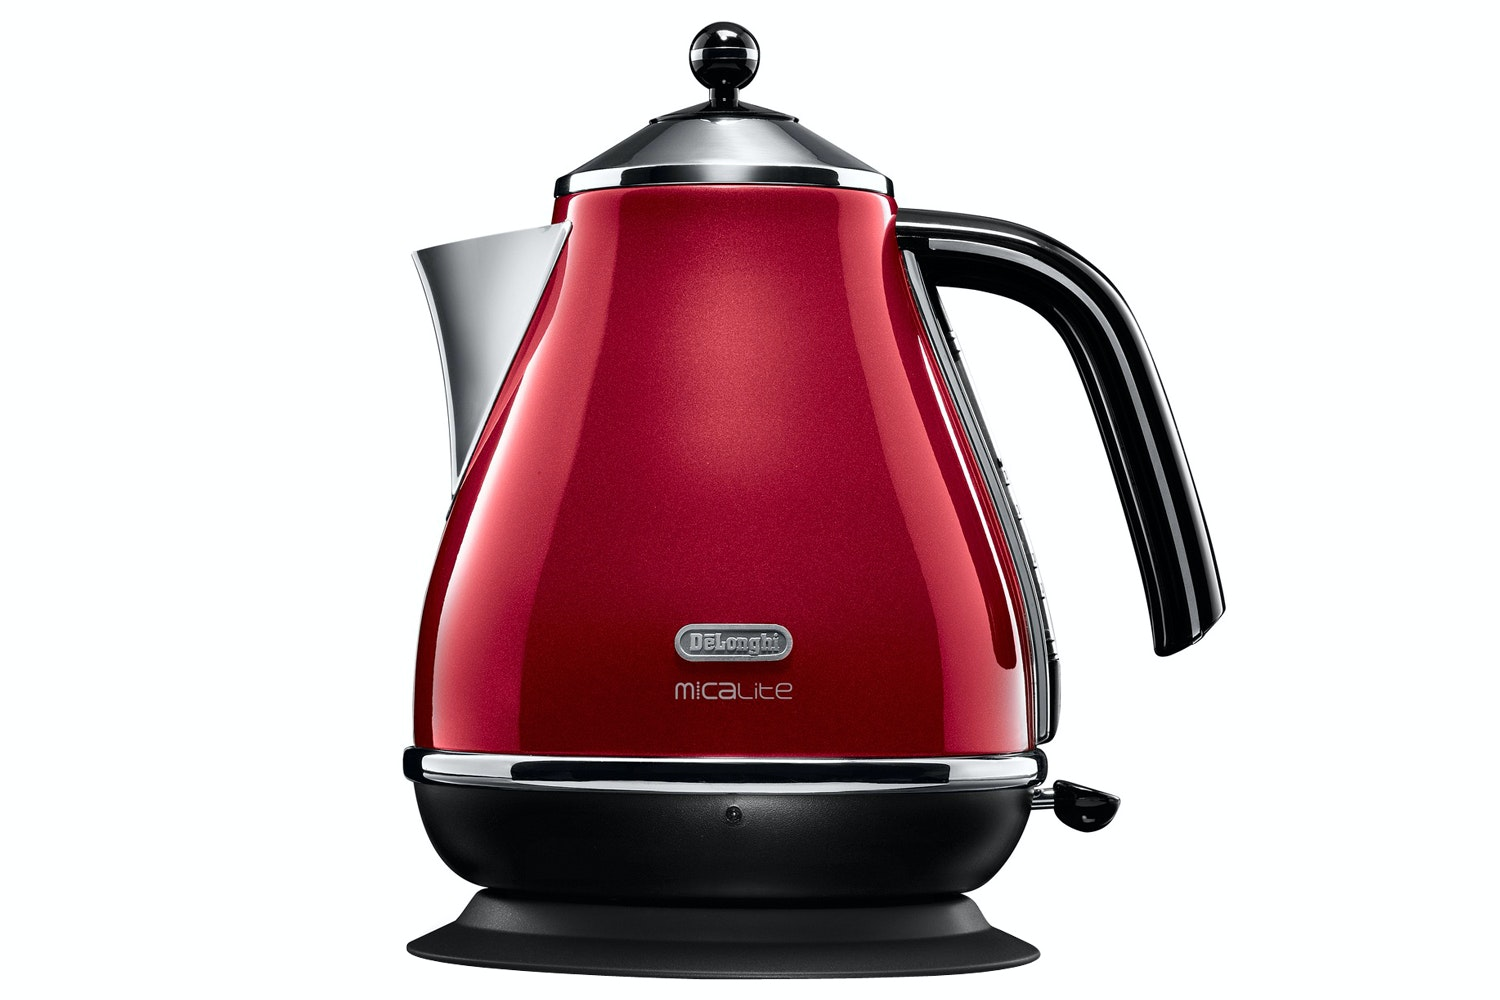 DeLonghi Micalite 1.7L Kettle | Red